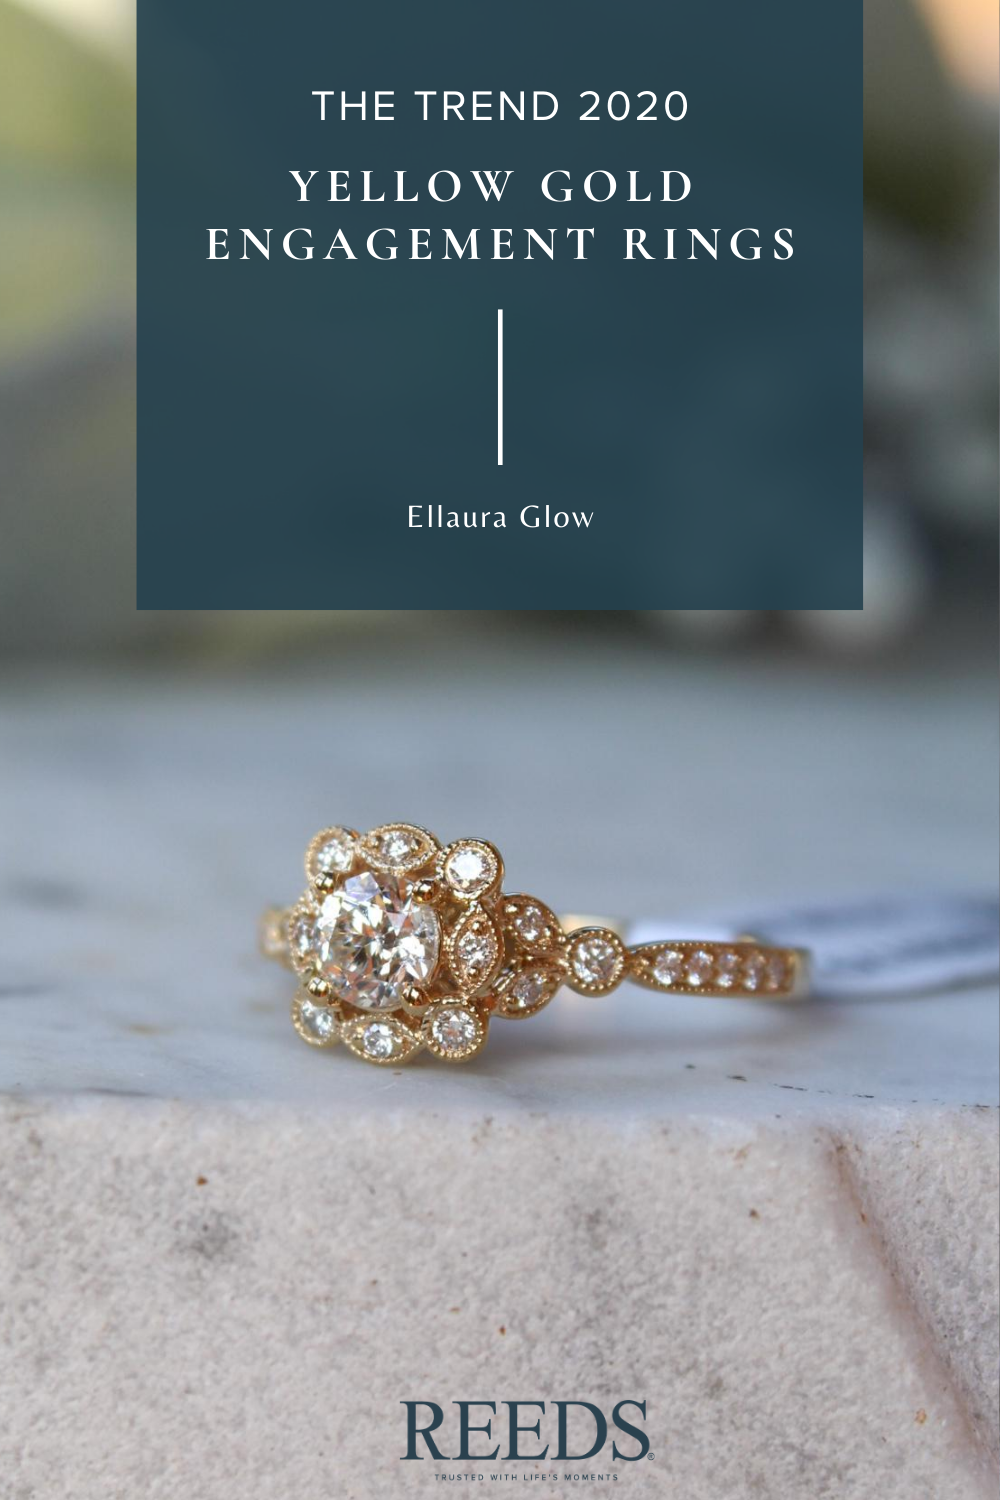 Yellow Gold Engagement Rings In 2020 Yellow Gold Engagement Rings Yellow Gold Engagement Engagement Rings